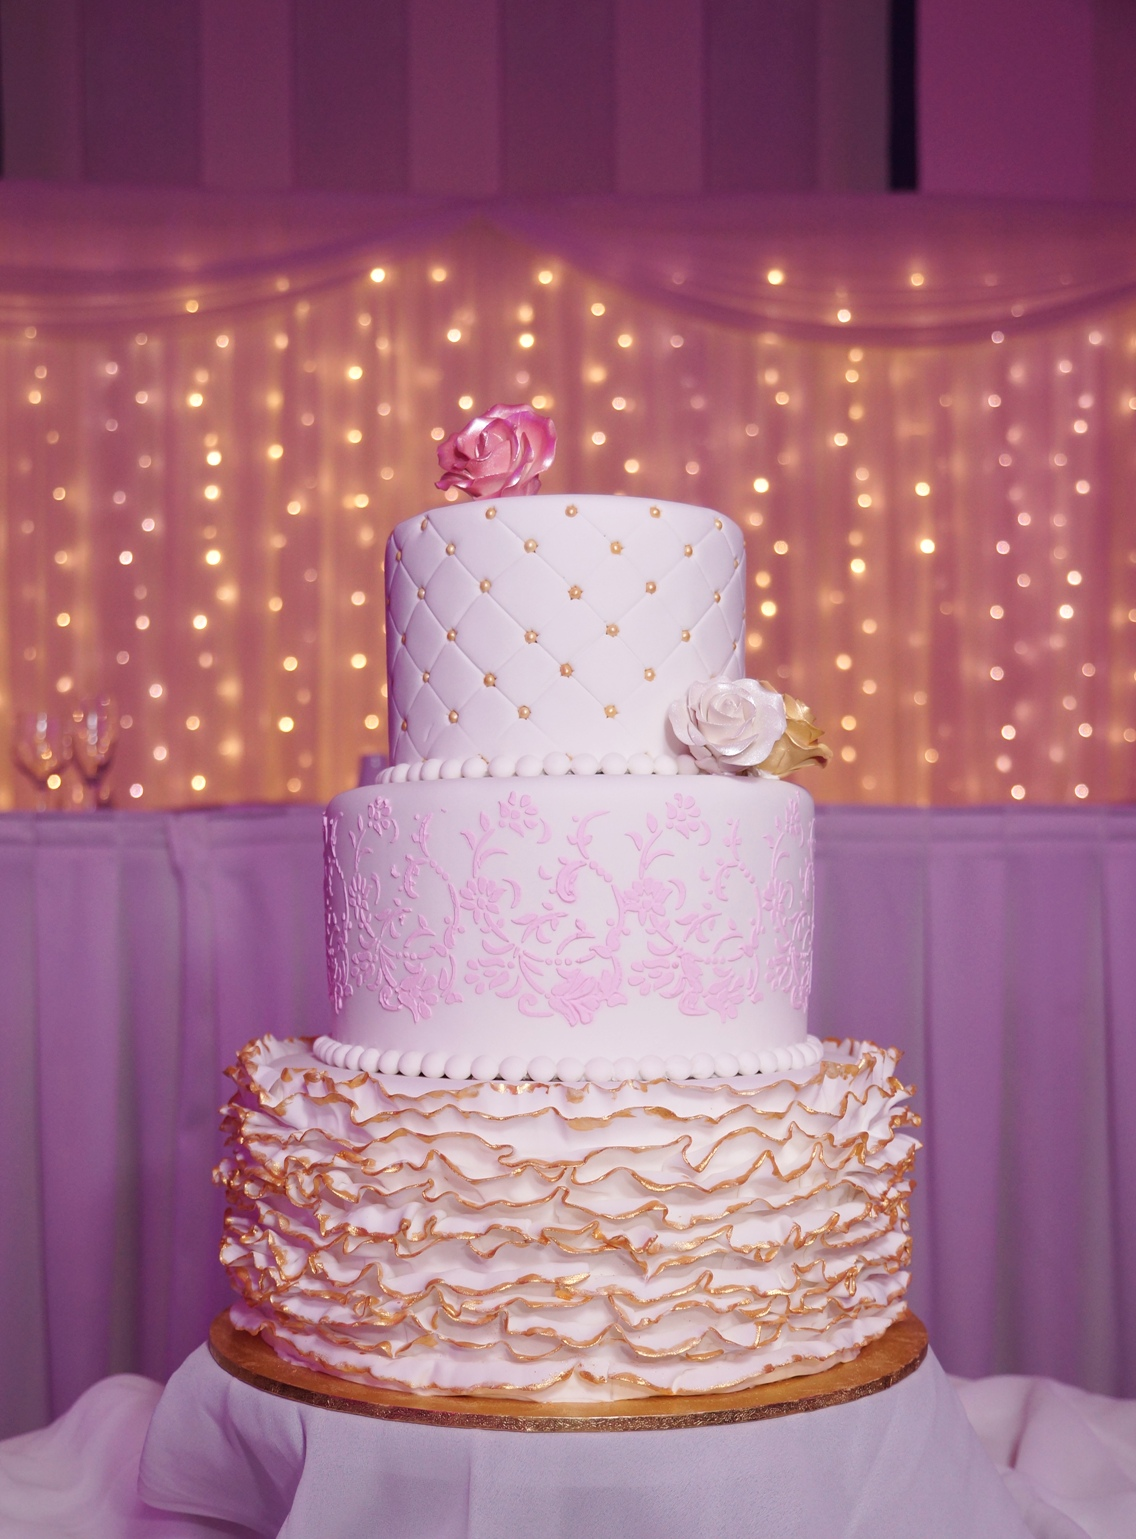 White fondant with pink & gold highlight